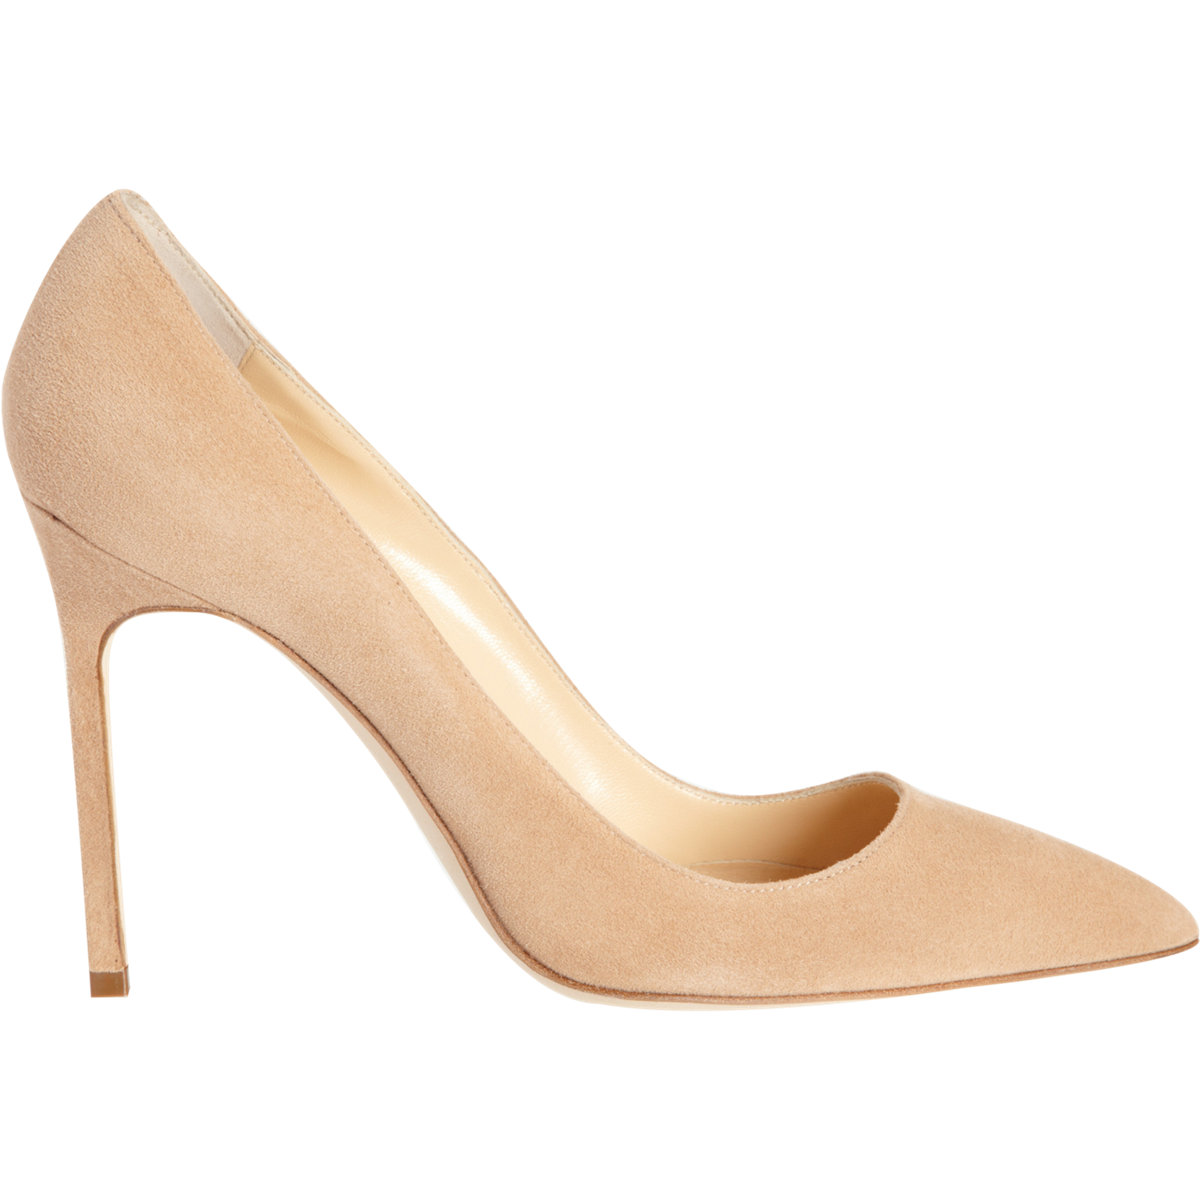 Five elegant high heels to make you even more stylish